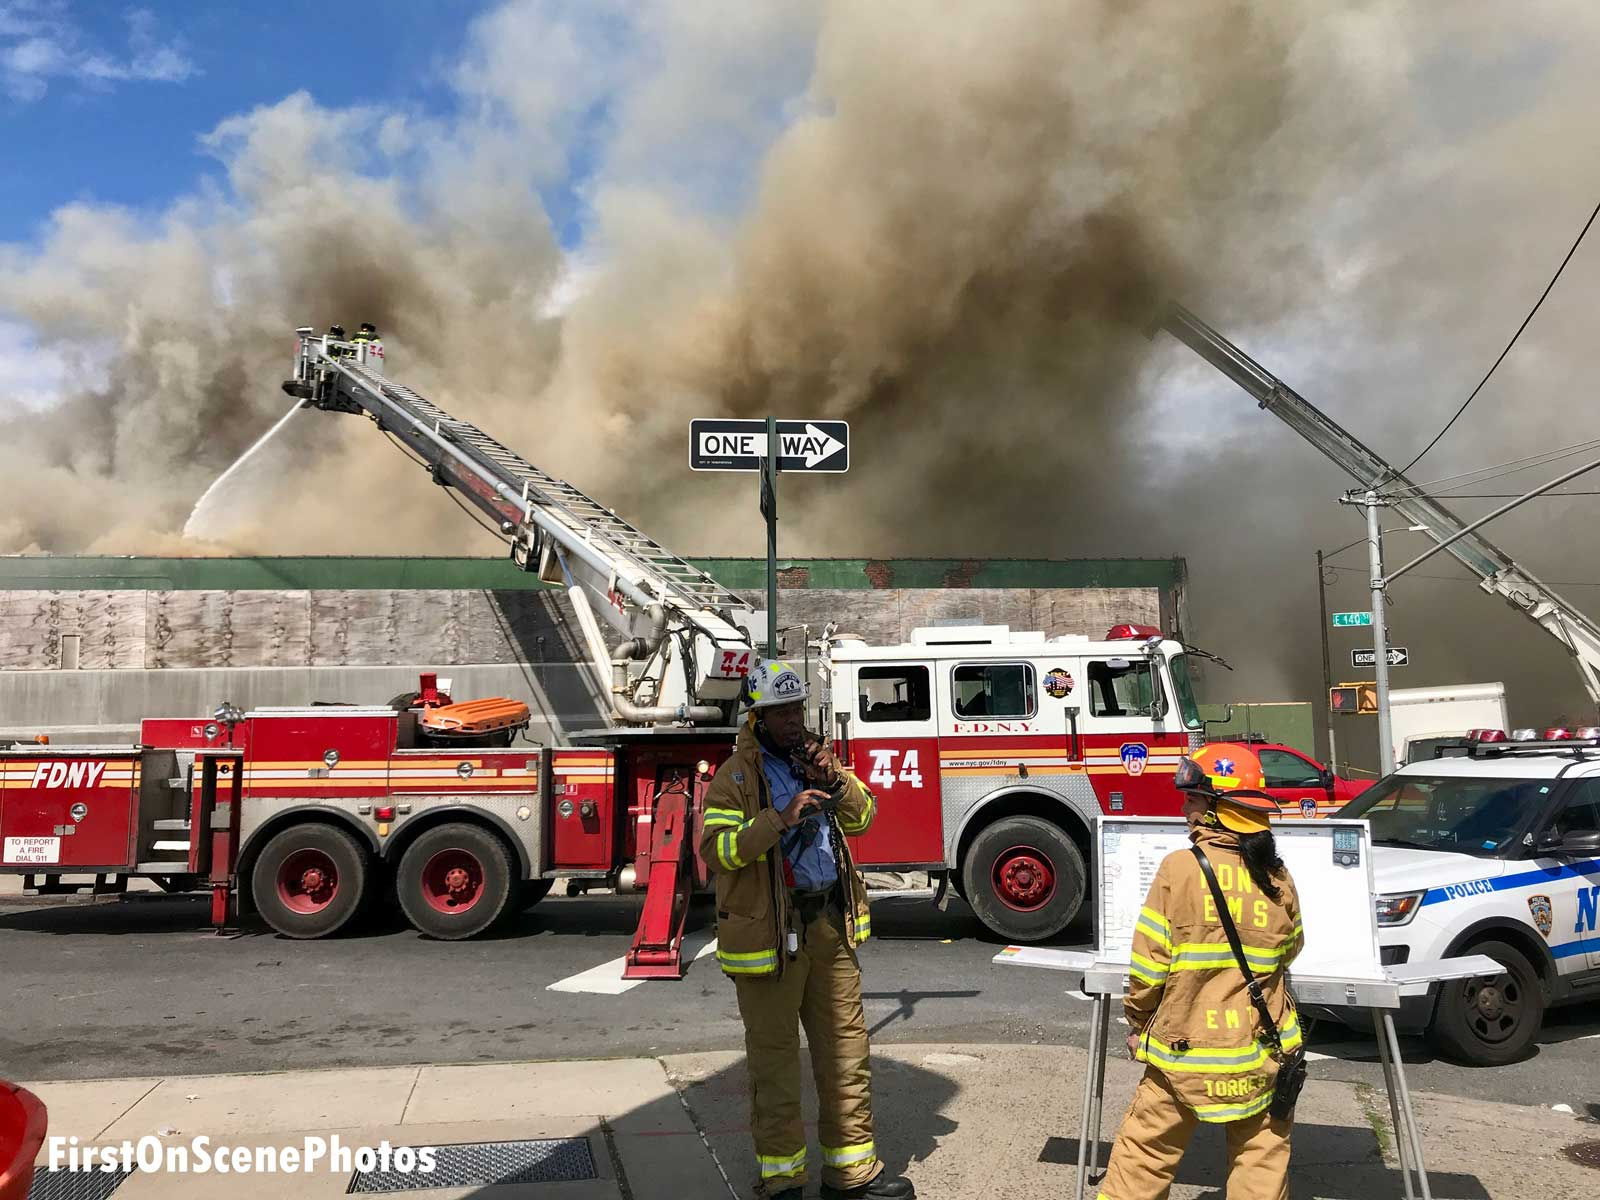 FDNY fire truck with aerial devices in operation at a Bronx warehouse fire